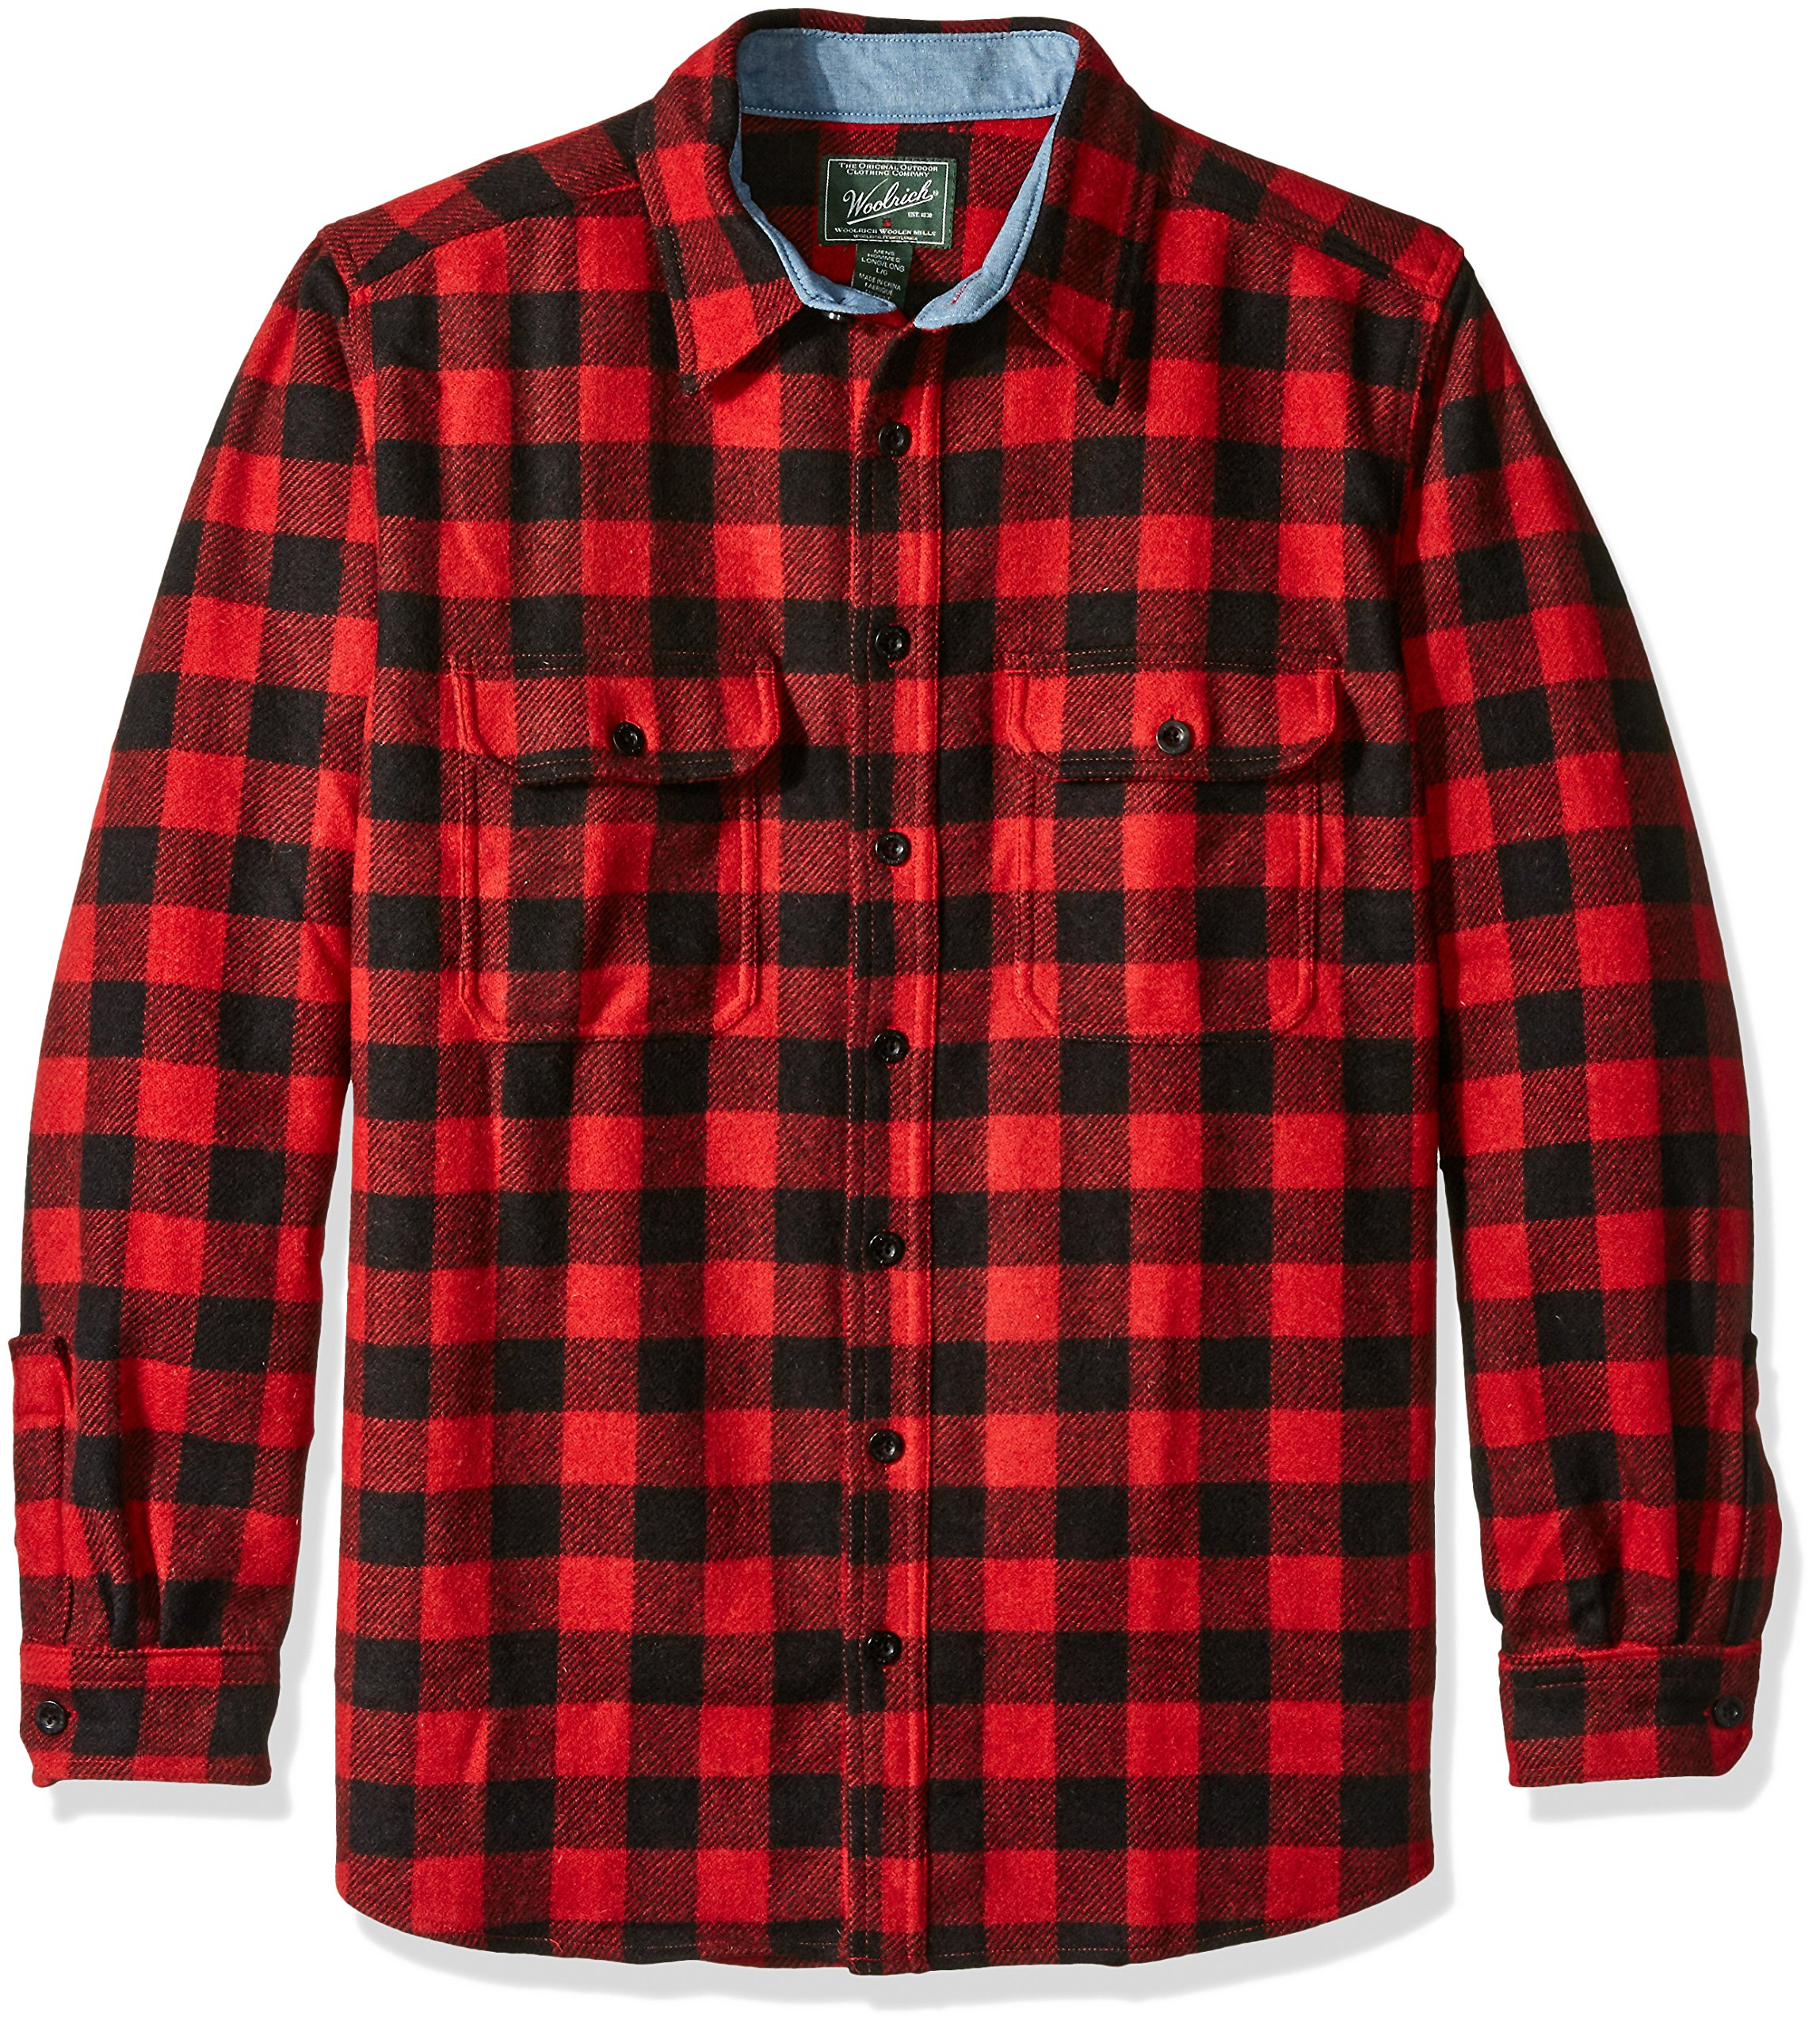 Woolrich Men's Size Wool Buffalo Shirt, Red/Black, X-Large/Tall by Woolrich (Image #1)